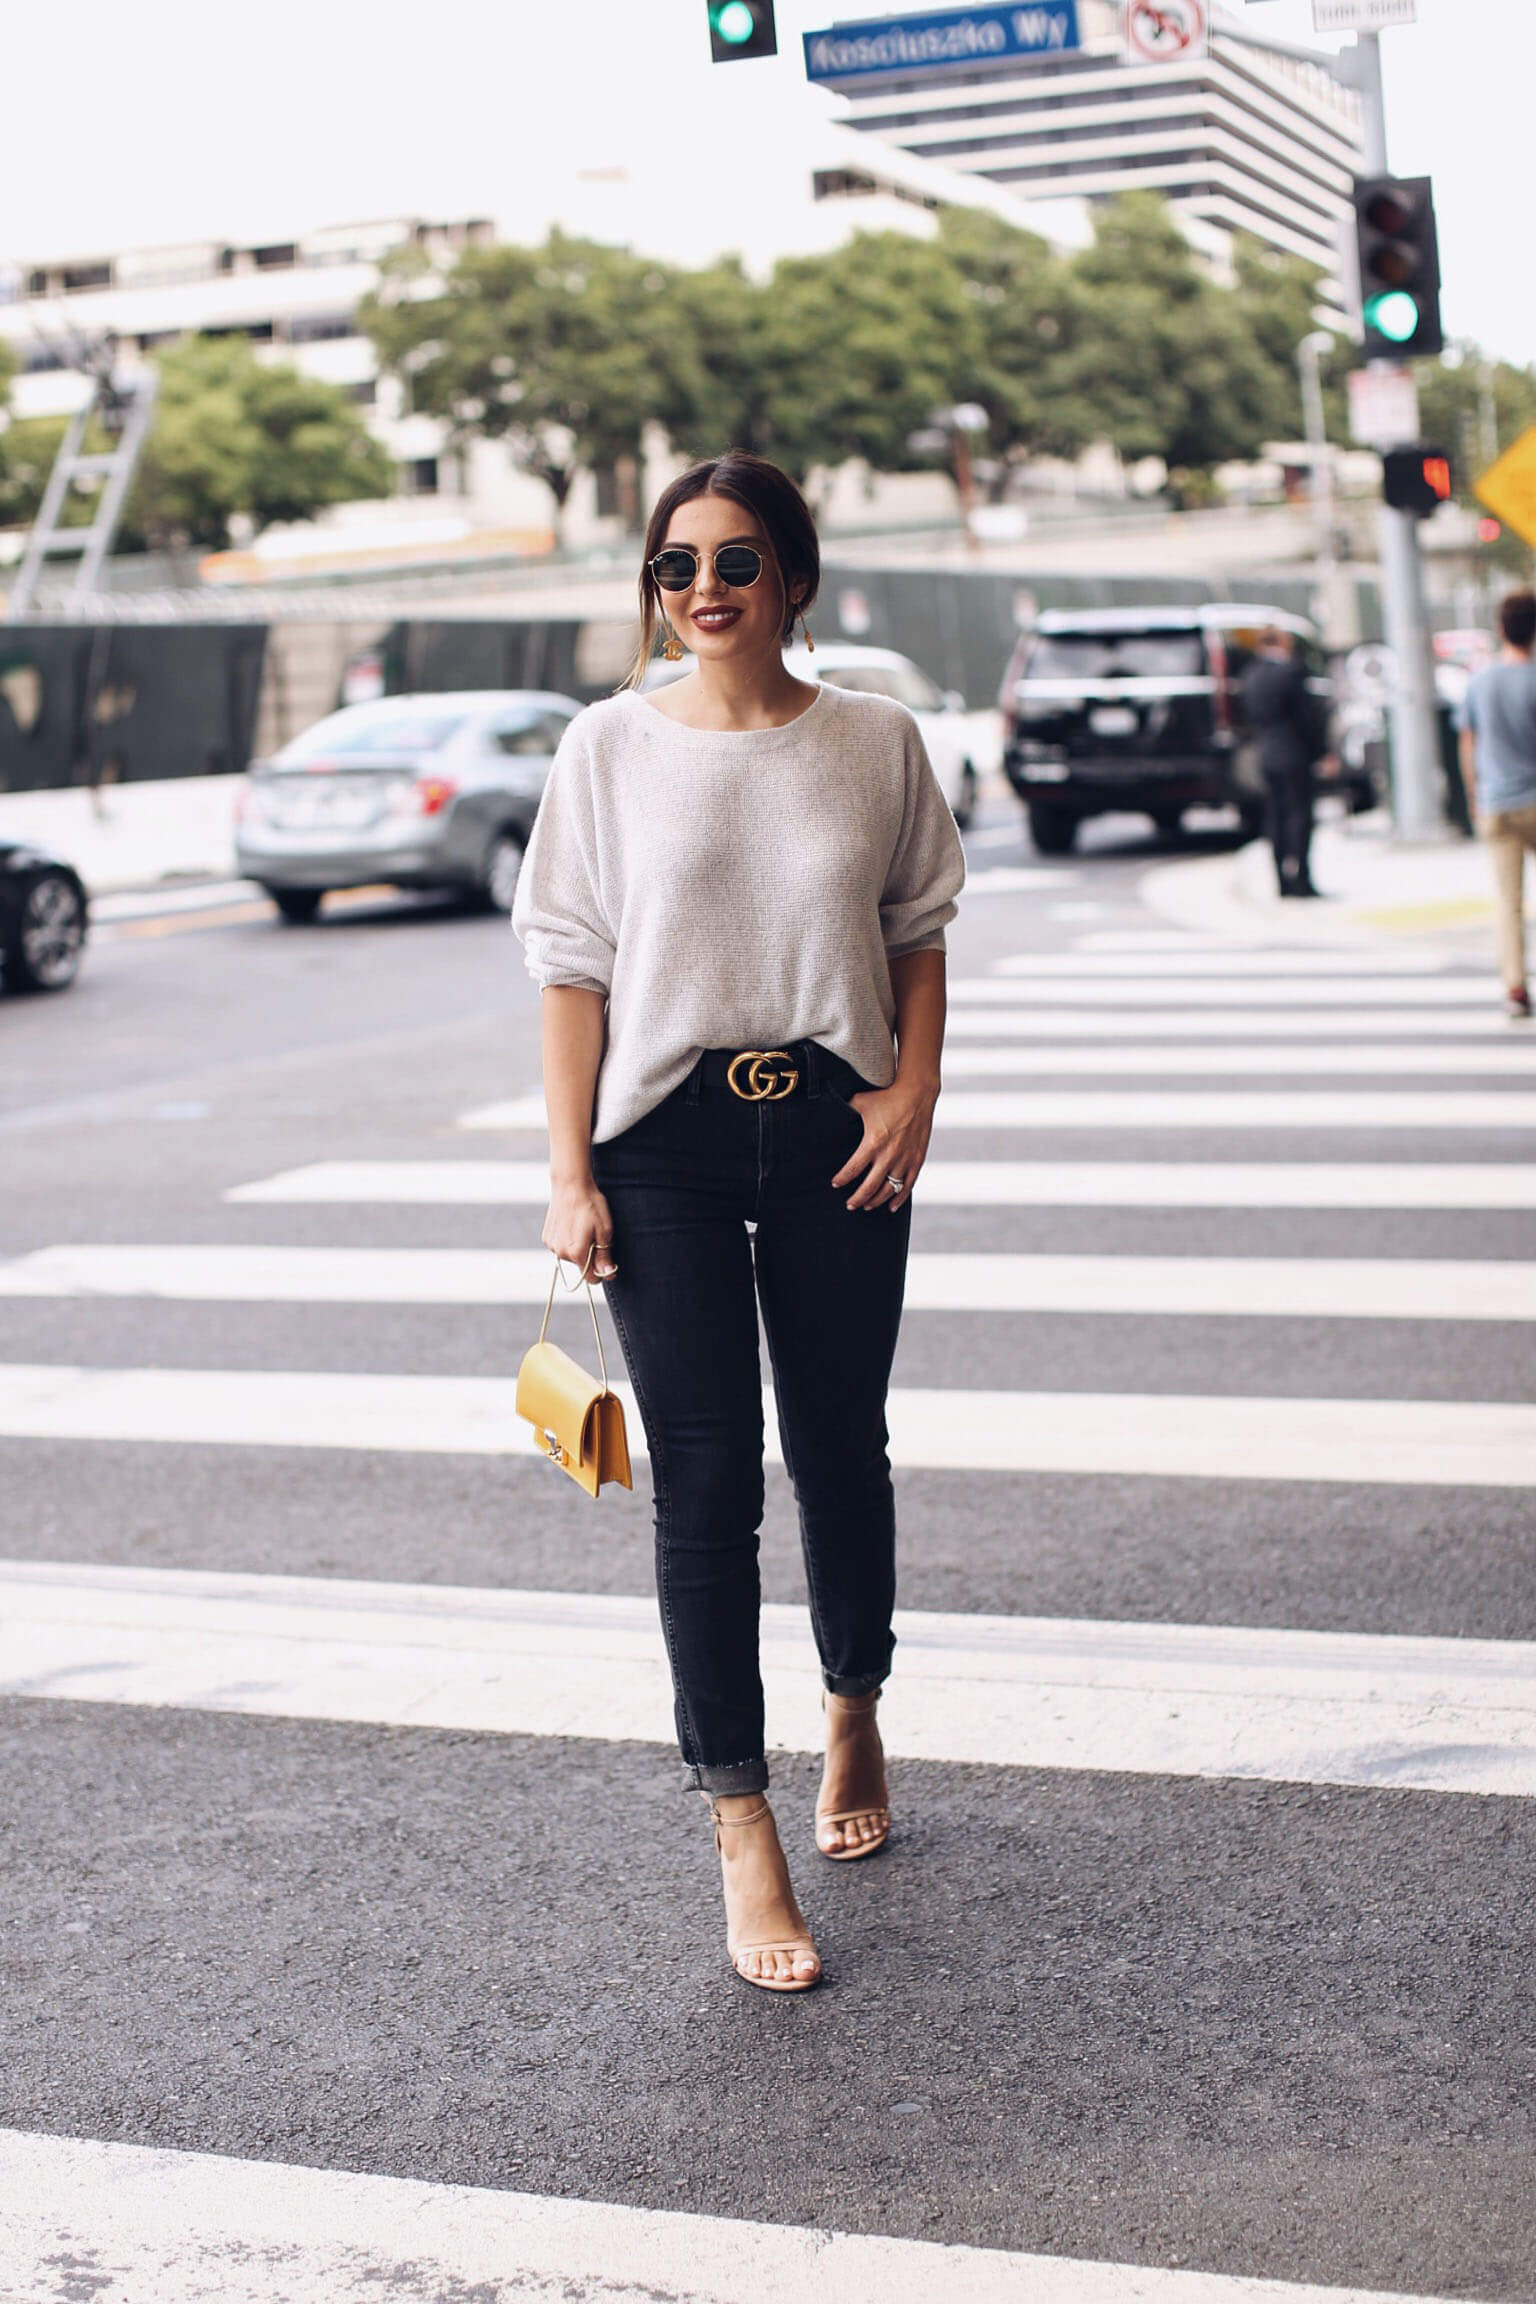 Sona Gasaprian's shopping tips for finding the best jeans.